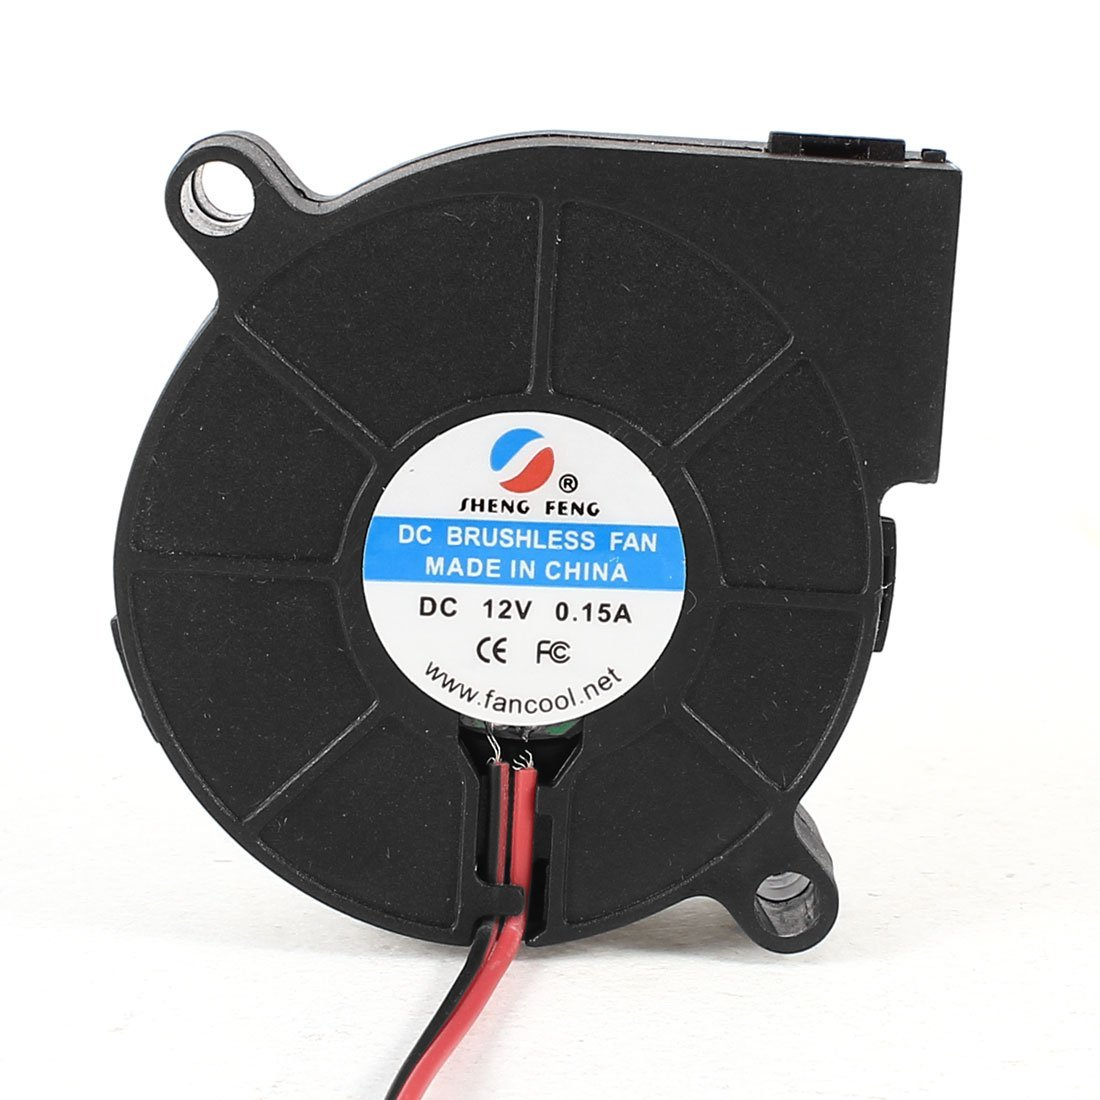 DC 12V 0.15A 2 Pin Connector Cooling Blower Fan 50mmx15mm for Laptop